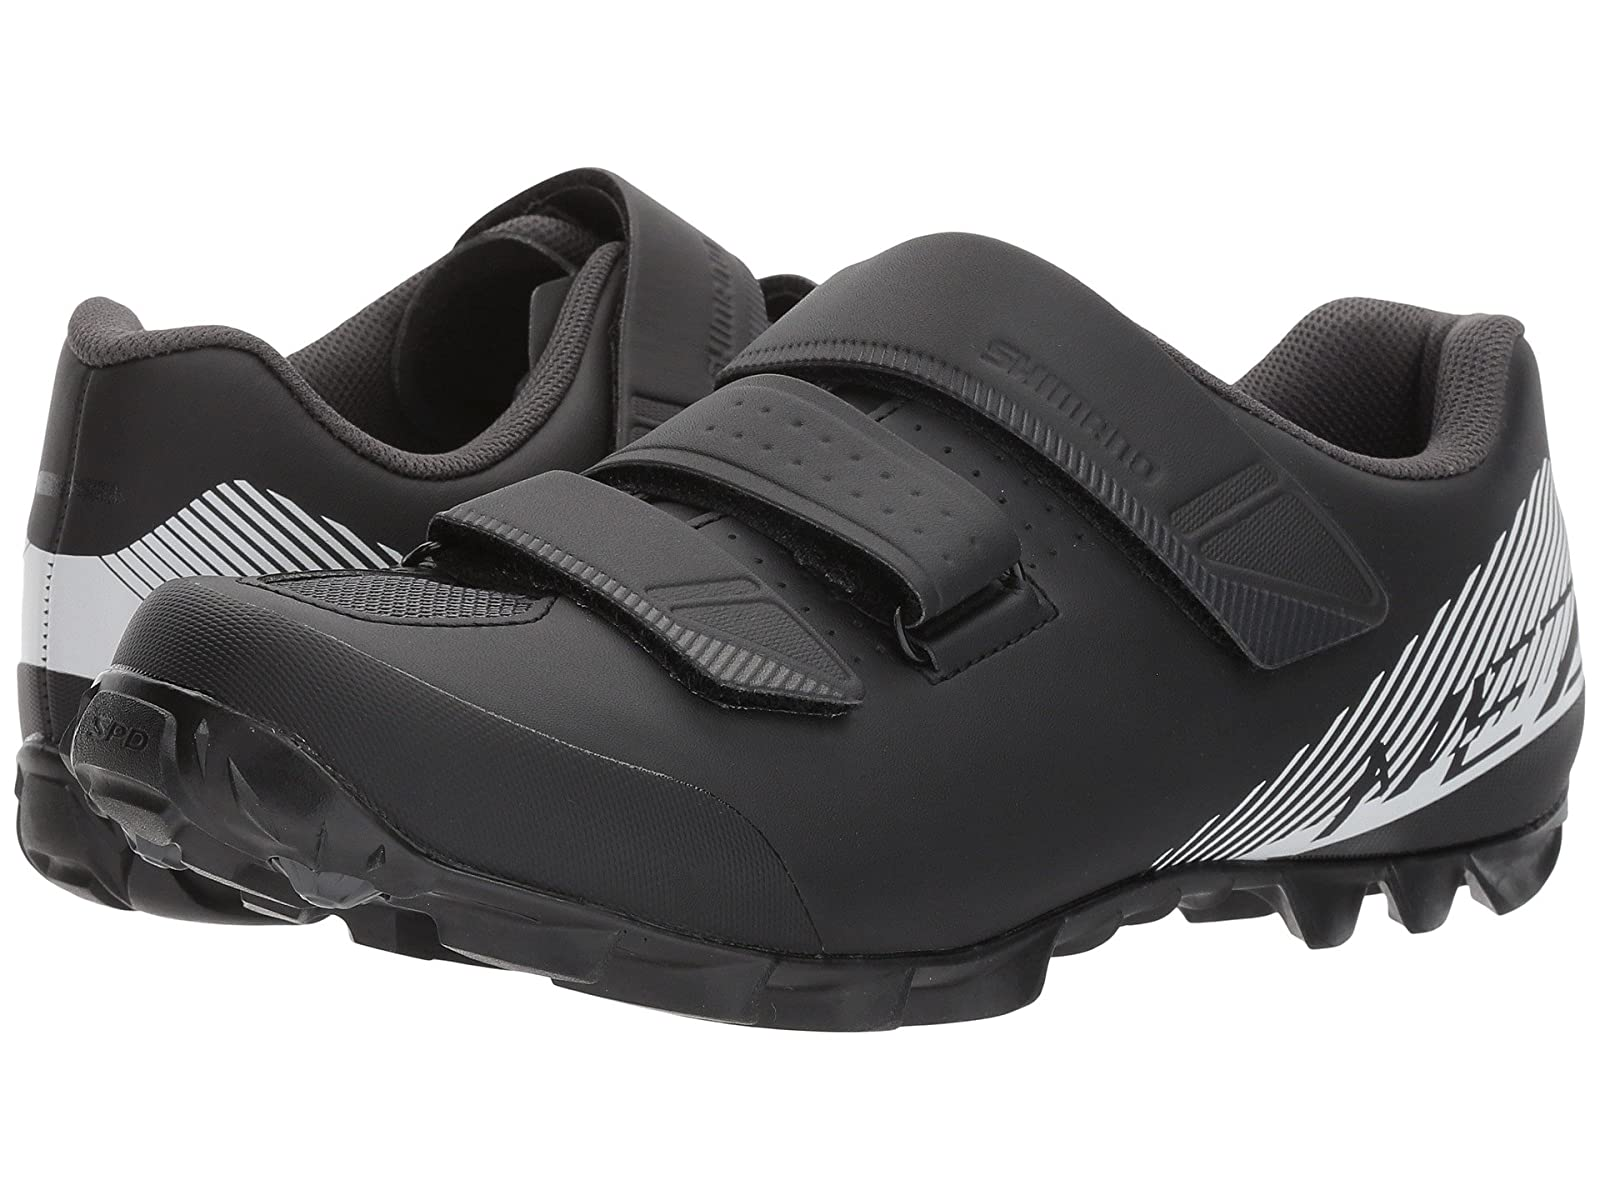 Shimano SH-ME2Atmospheric grades have affordable shoes